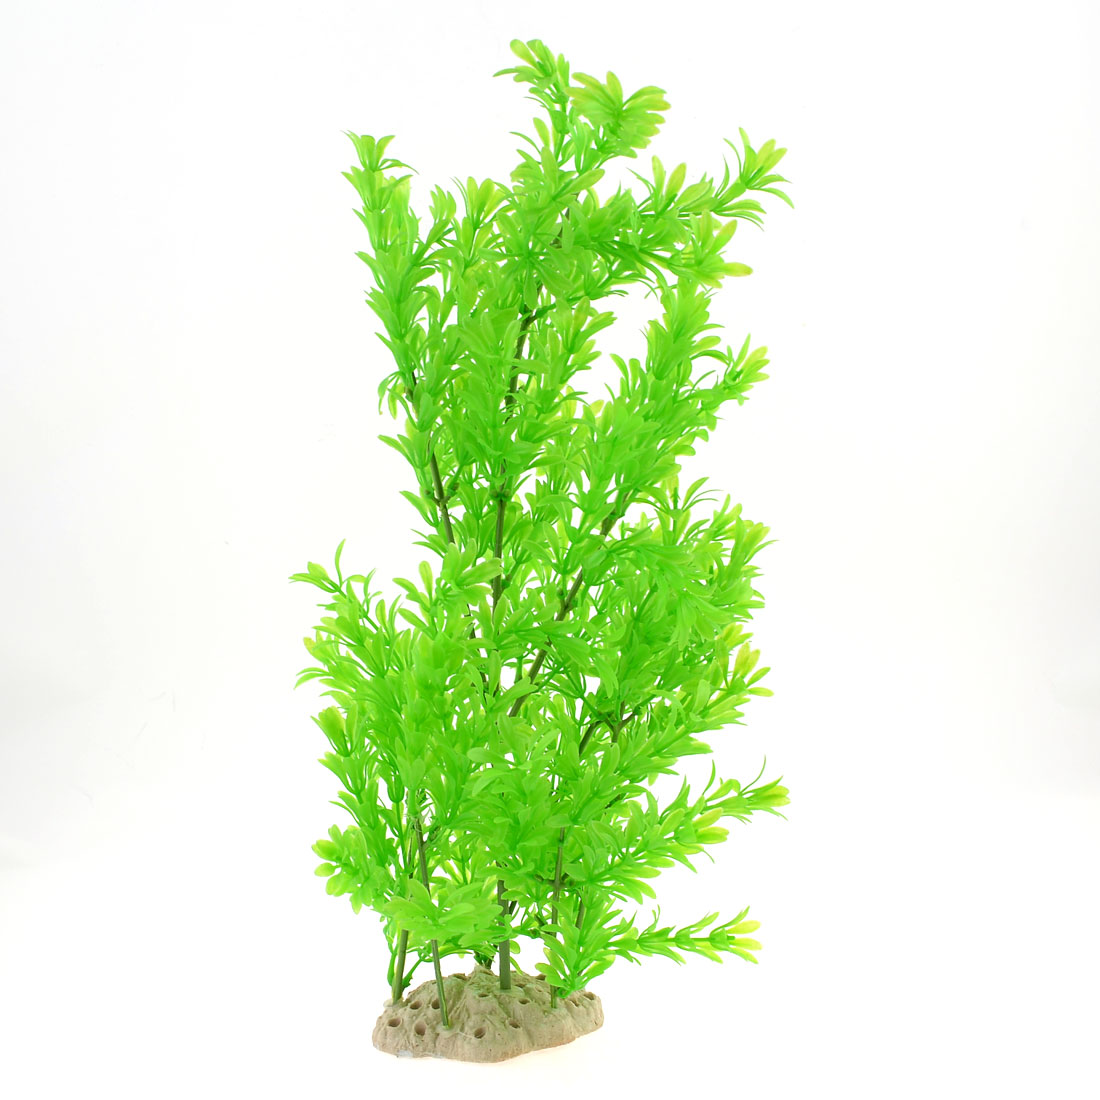 Aquarium Ceramic Base 50cm Height Manmade Plant Grass Green